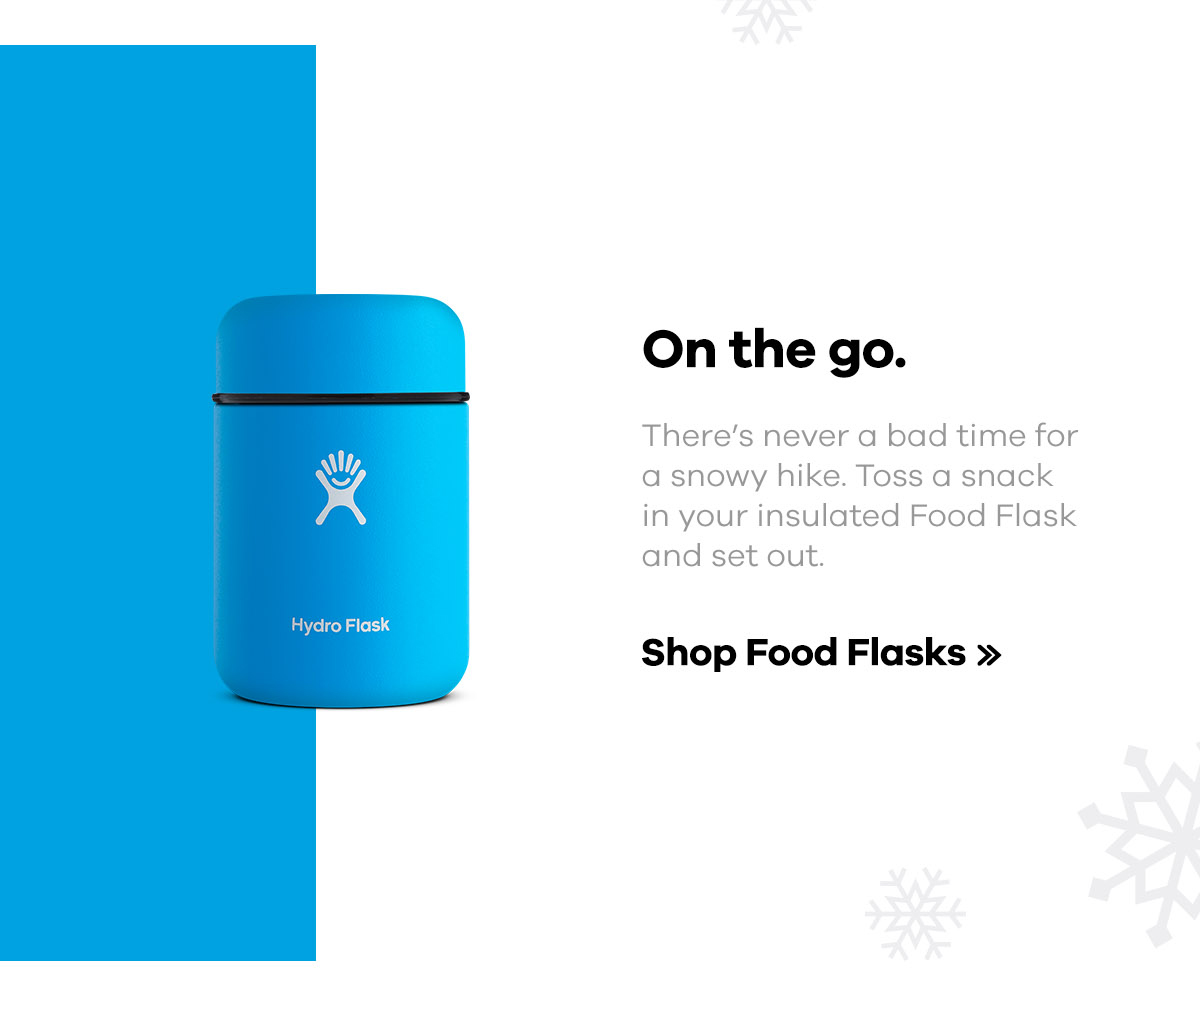 On the go. there's never a bad time for a snowy hike. Toss a snack in your insulated Food Flask and set out. | Shop Food Flasks >>